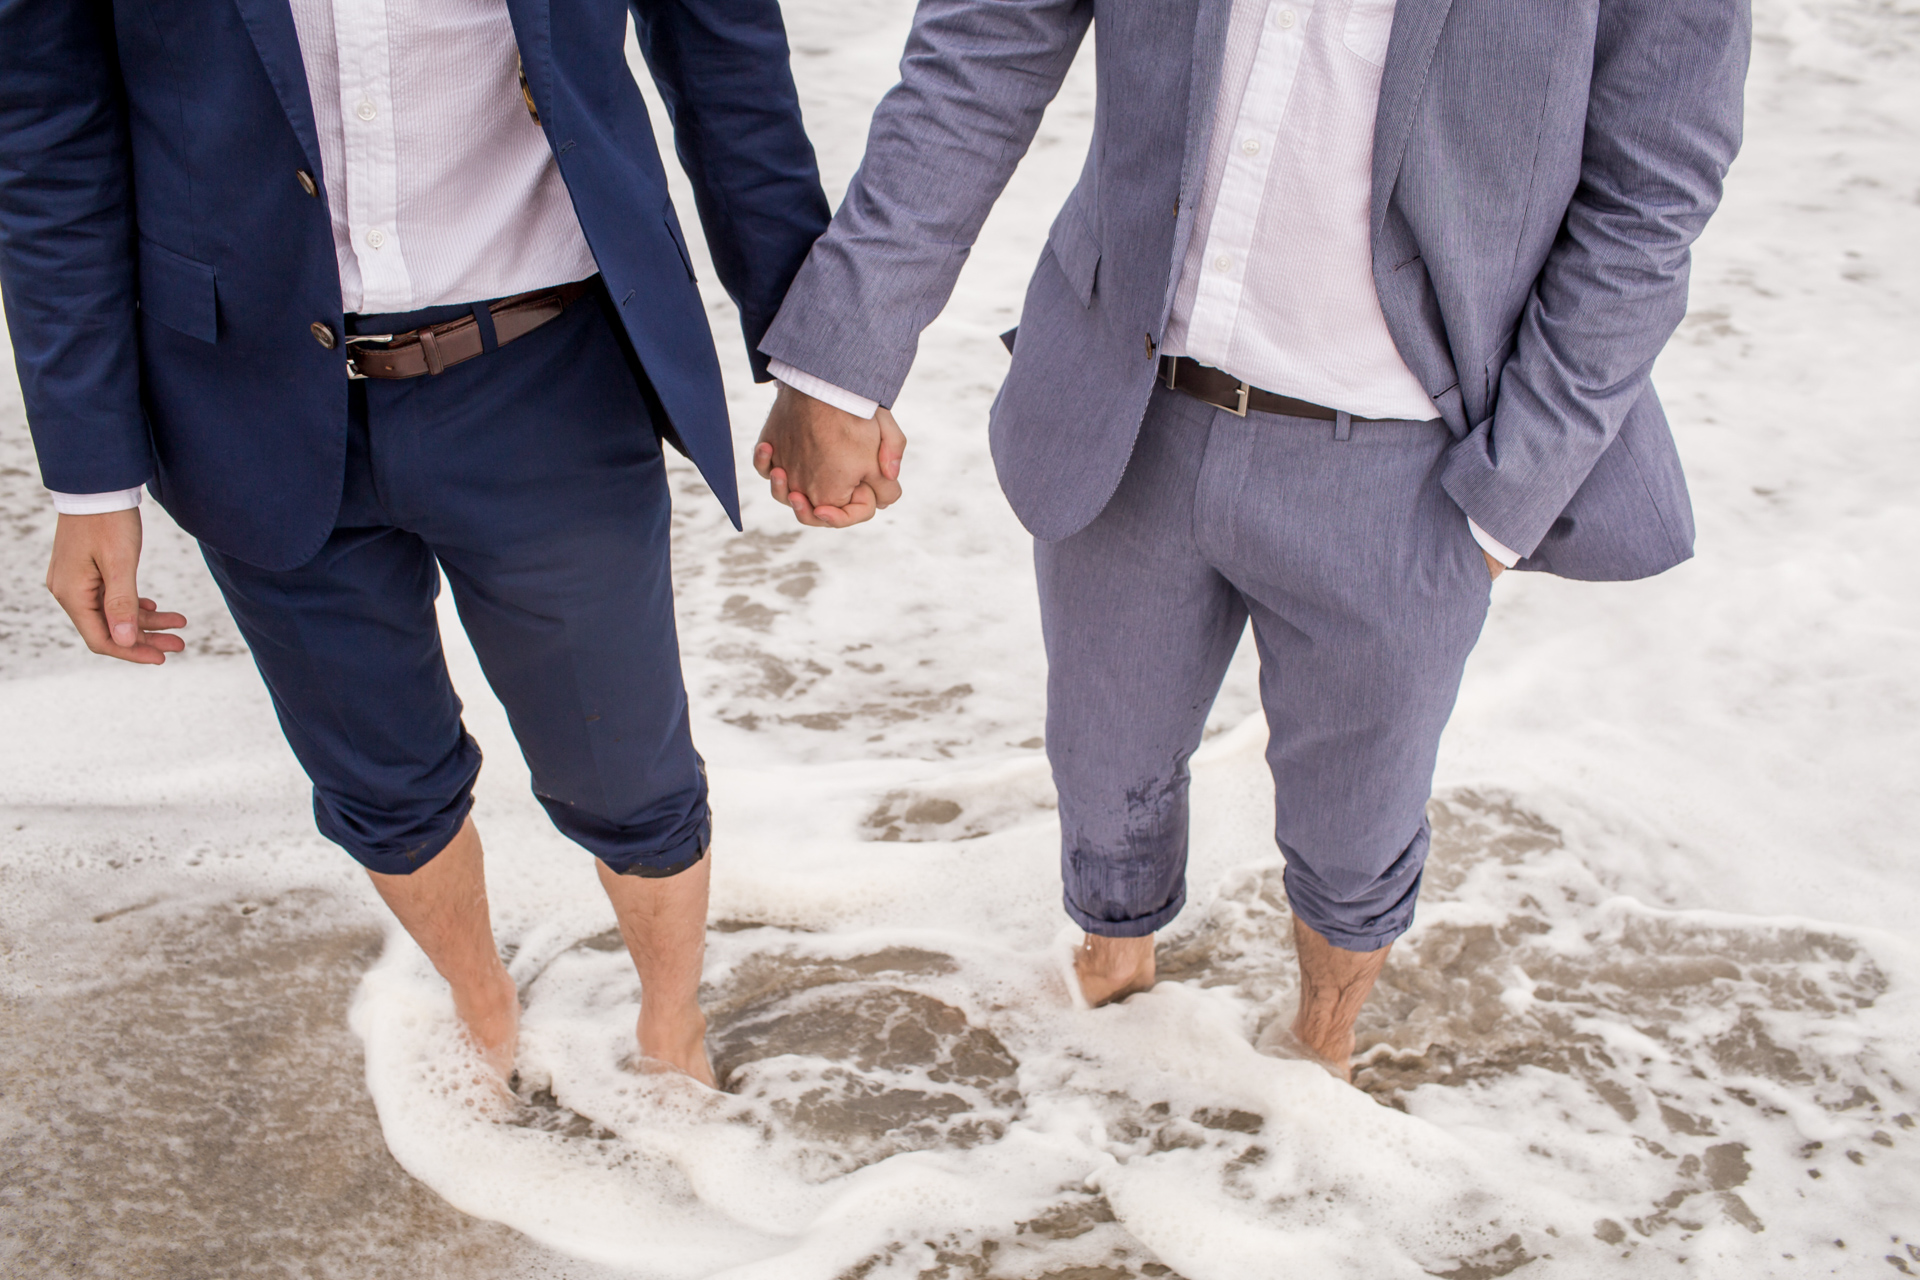 Nantucket Island, MA beach elopement wedding | Detail during portraits of the grooms.